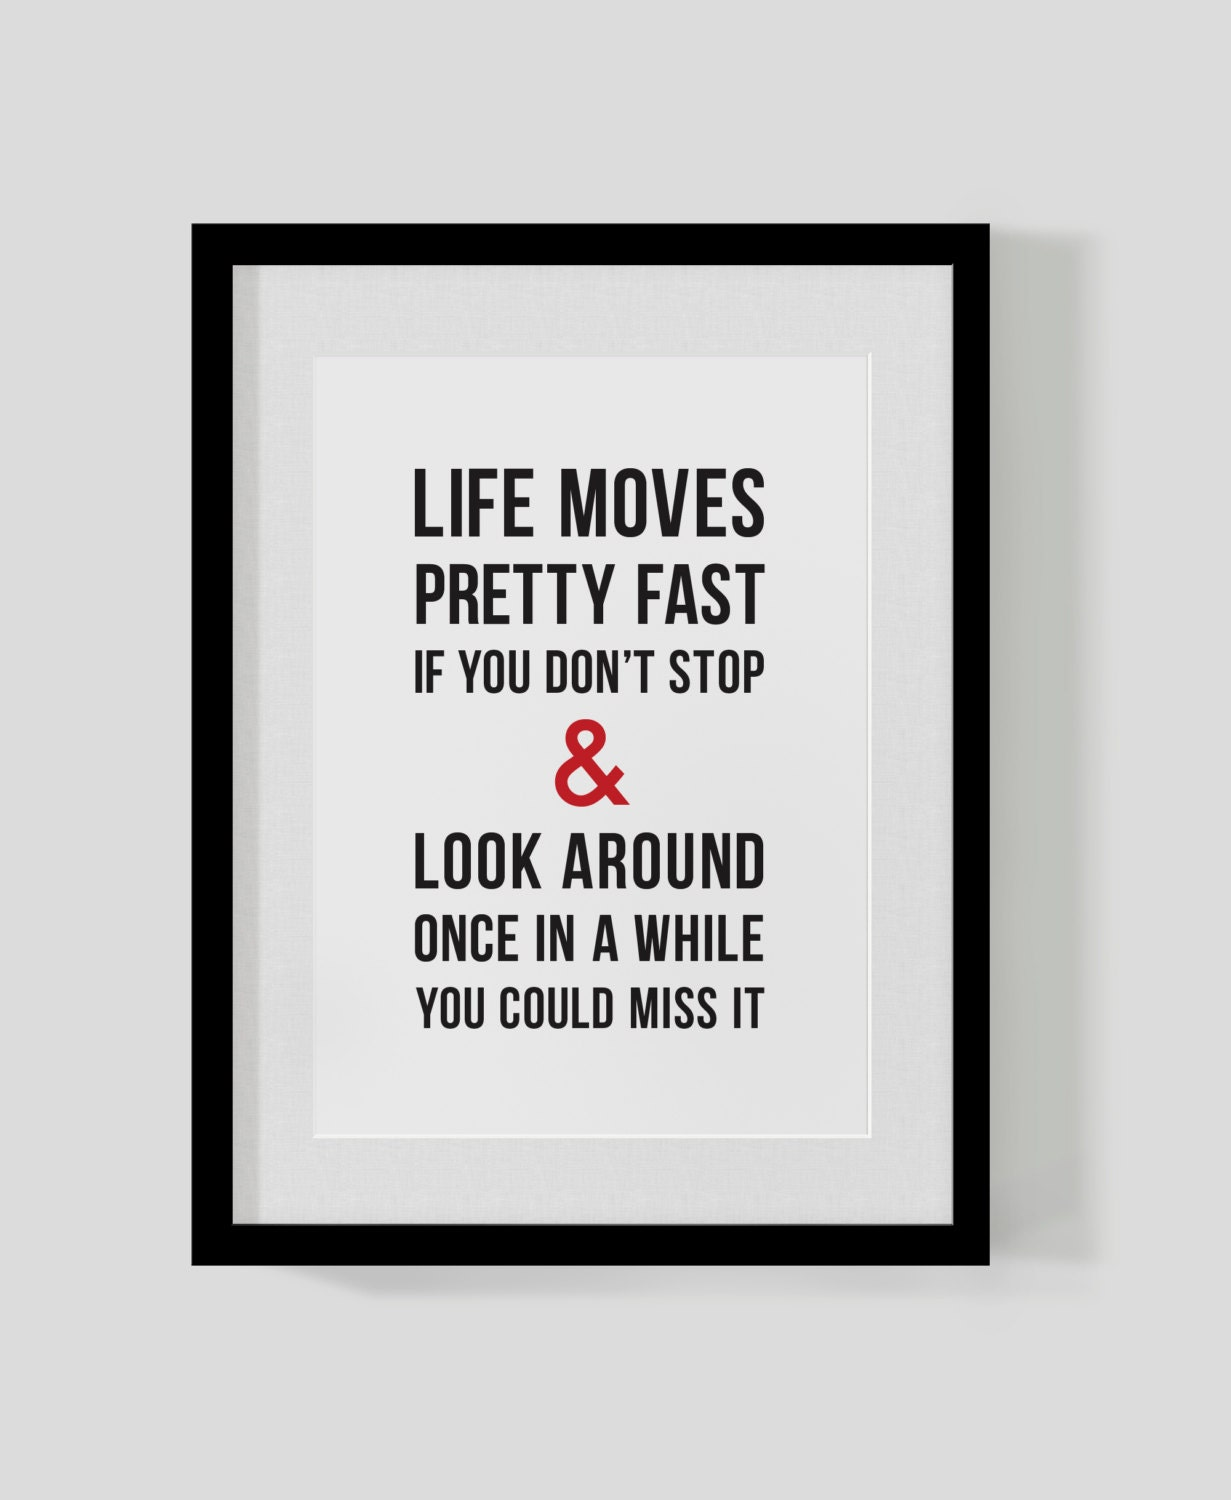 Ferris Bueller Life Moves Pretty Fast Quote Cool Ferris Bueller's Day Off Classic Film Quote Print Life